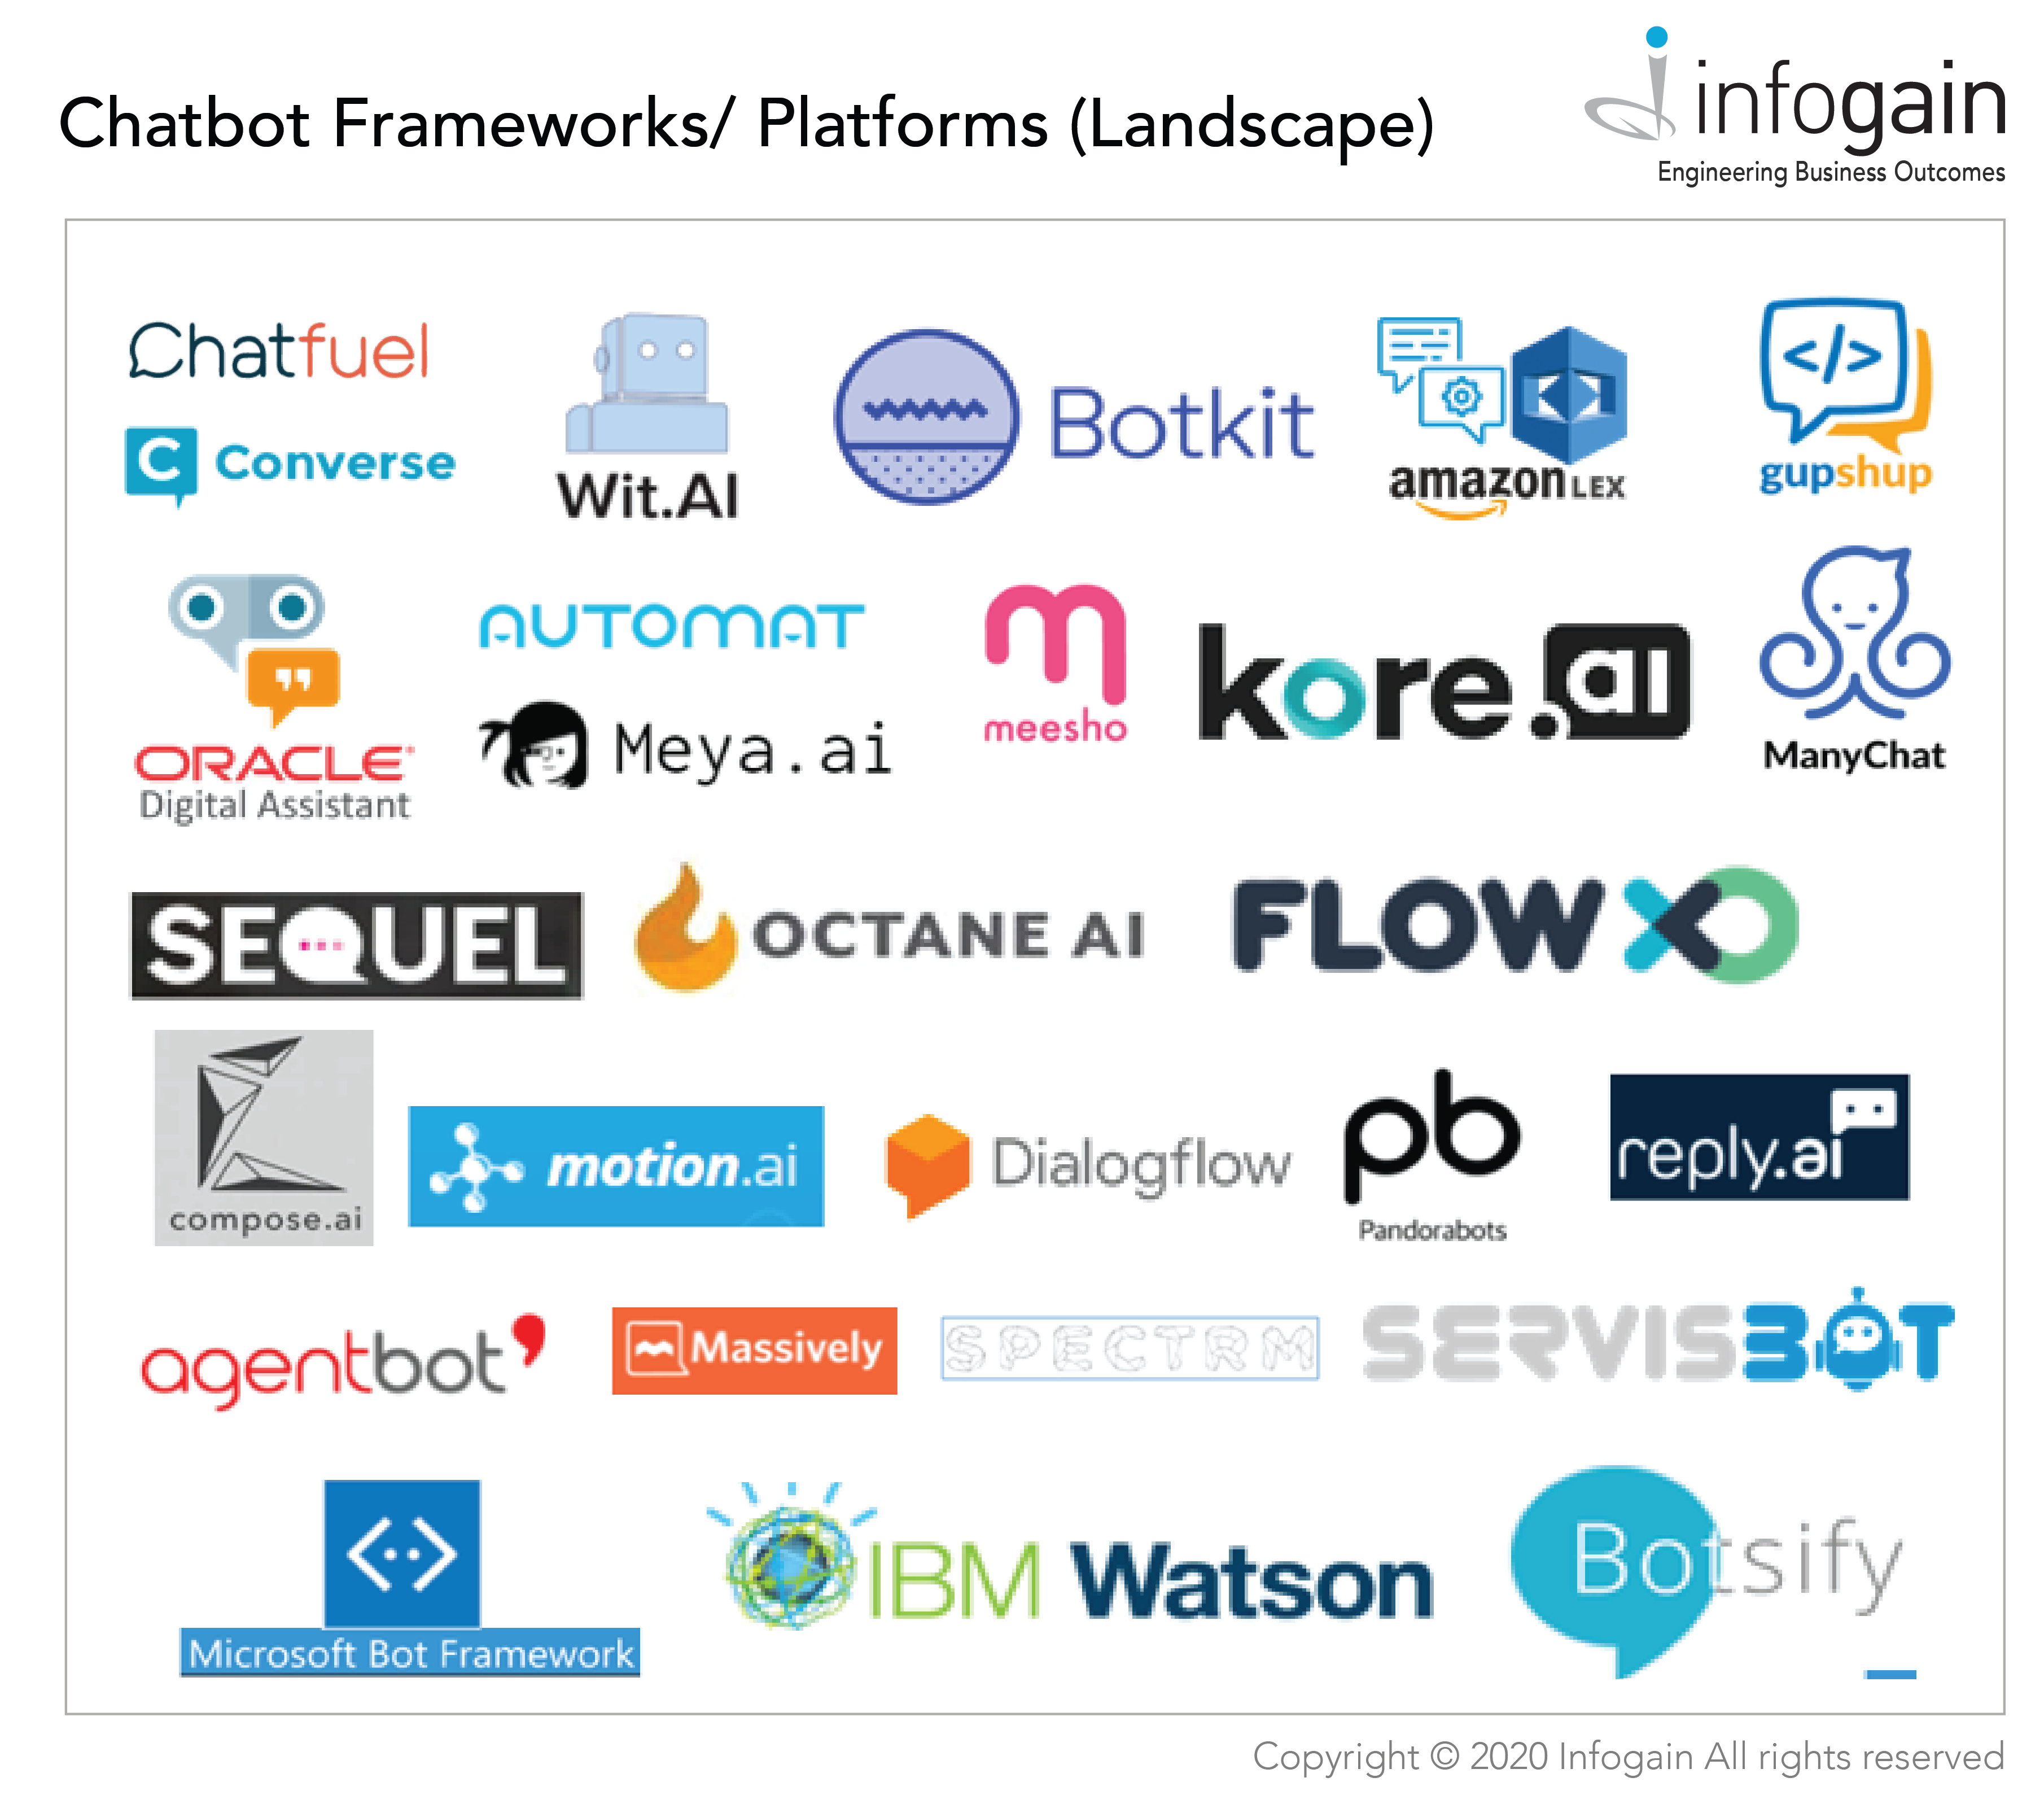 What are Chatbot Frameworks and Chatbot Platforms